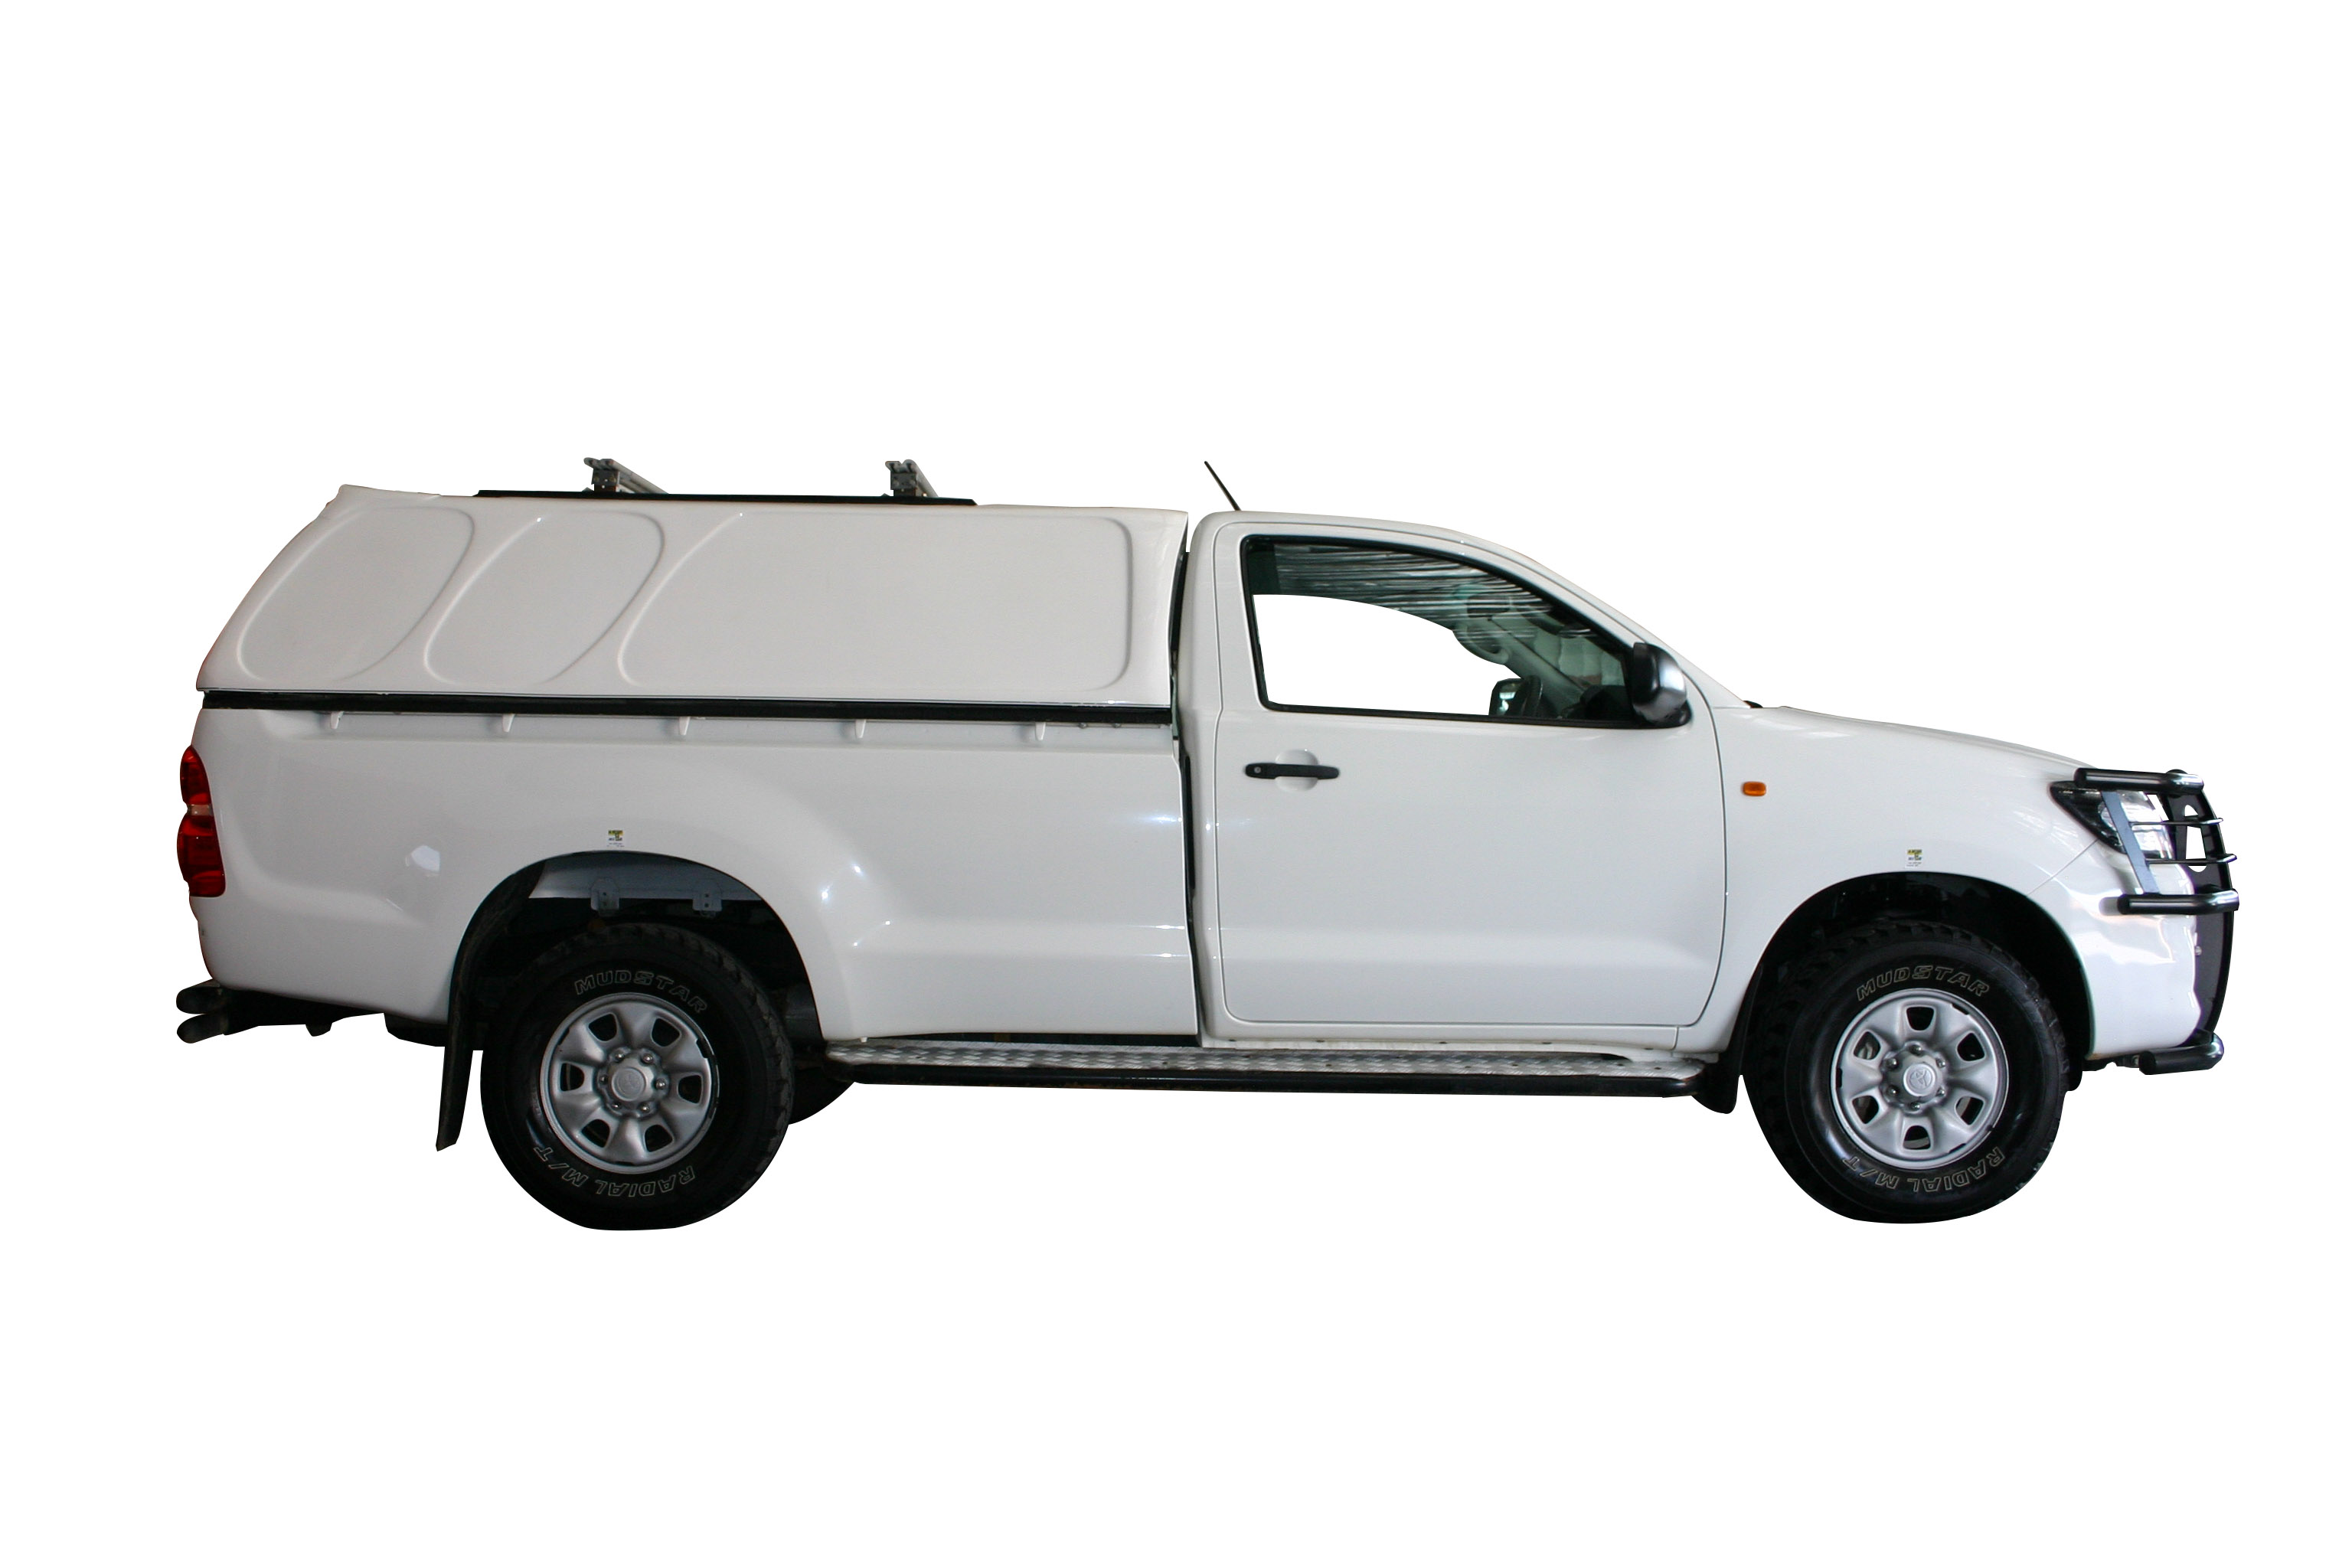 toyota hilux 2.5td 4x4 single cab (category d) er 865 - camper